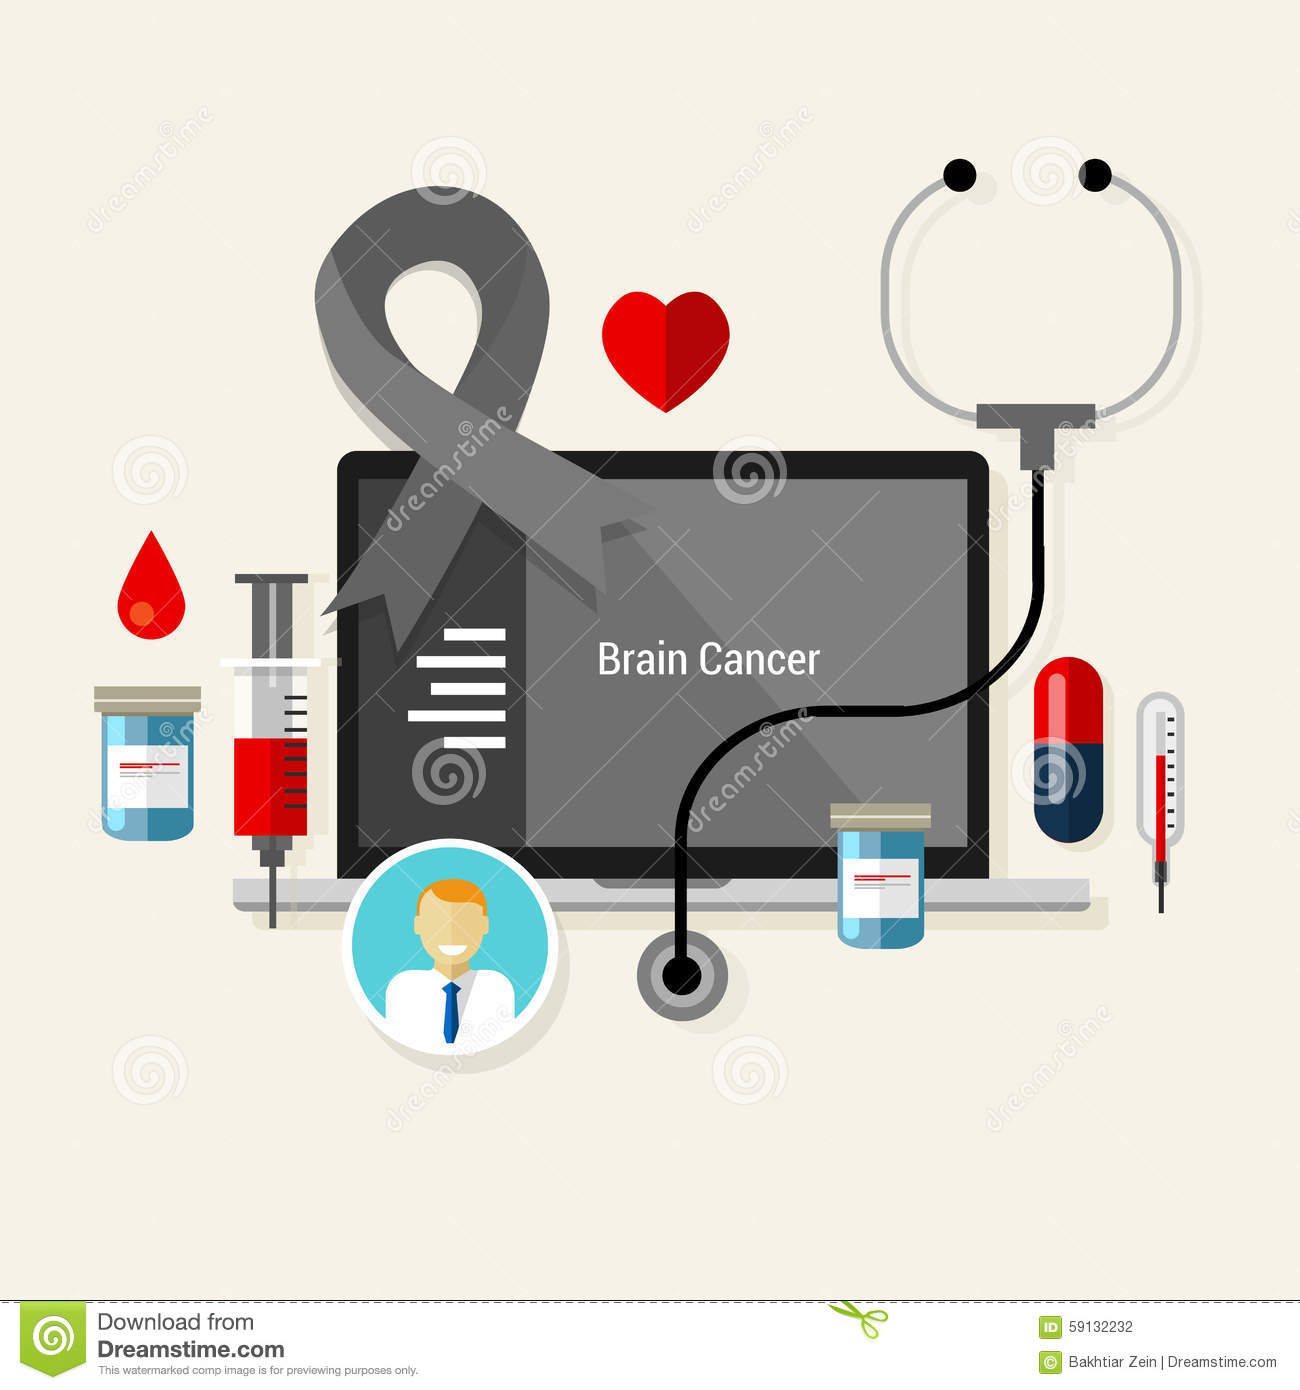 Brain Cancer Treatment Chemotherapy Medicine Medical